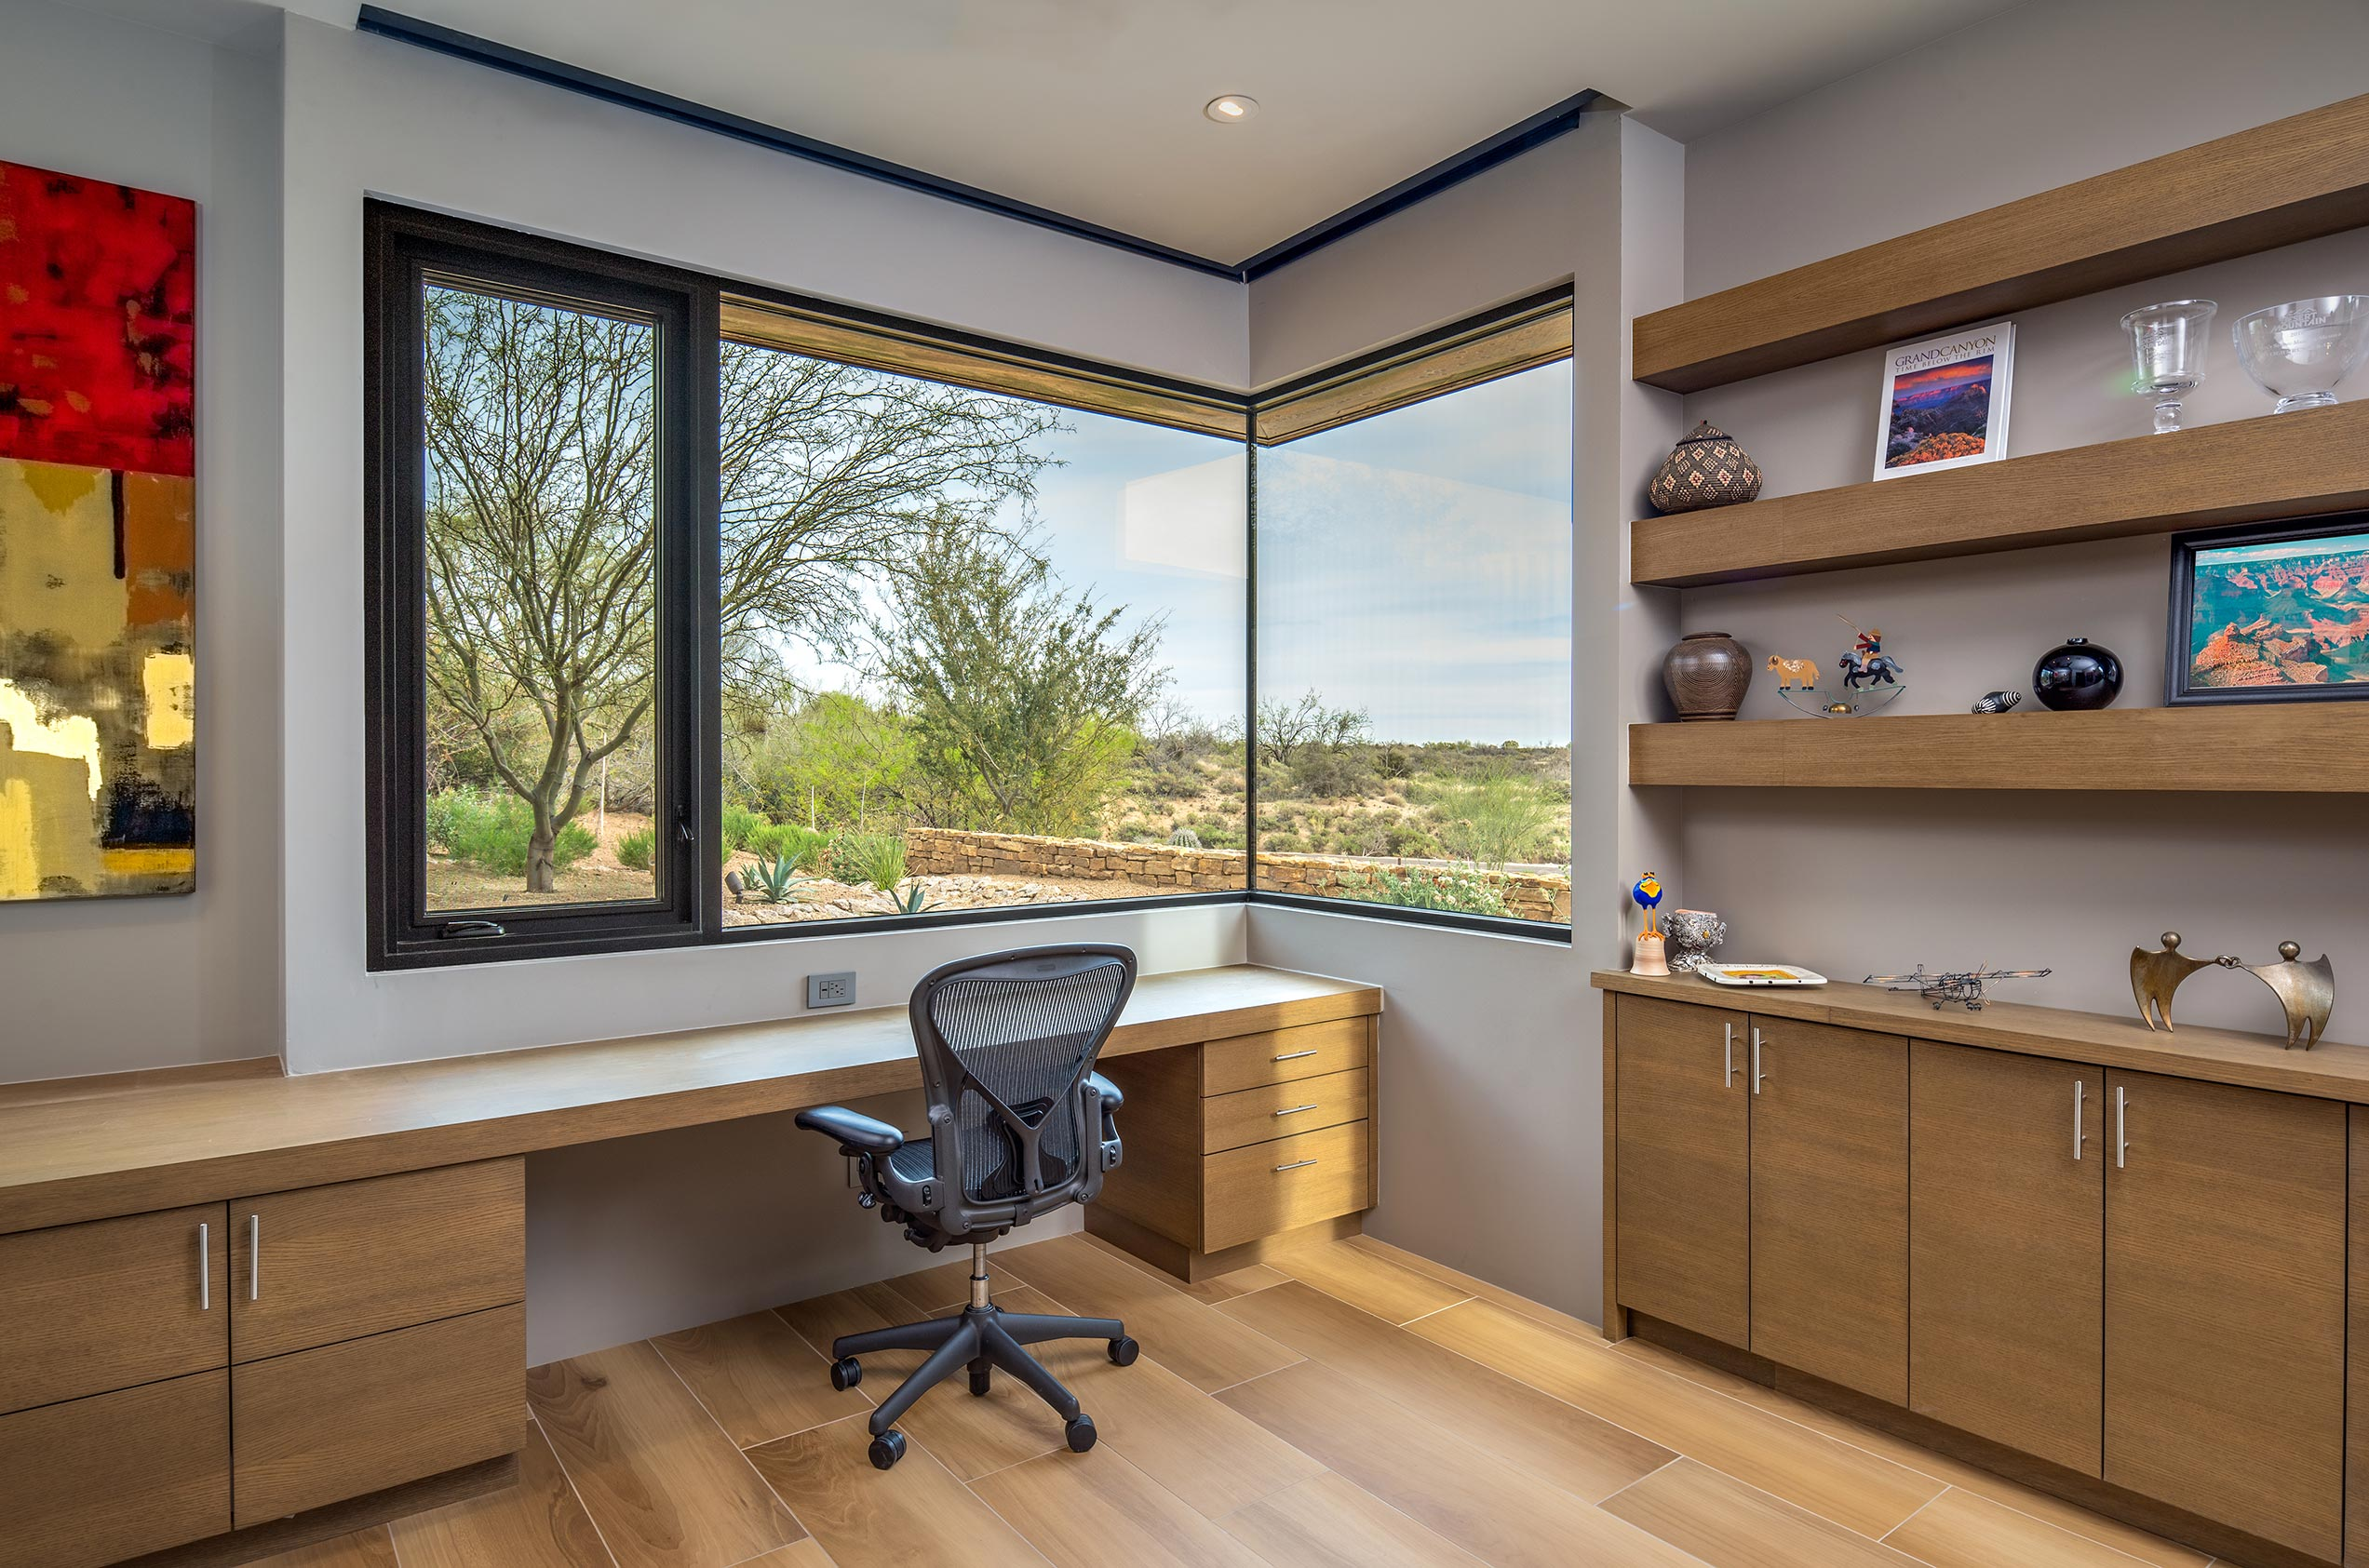 A Series 670 Casement Window in the home office swings open to let in fresh air.